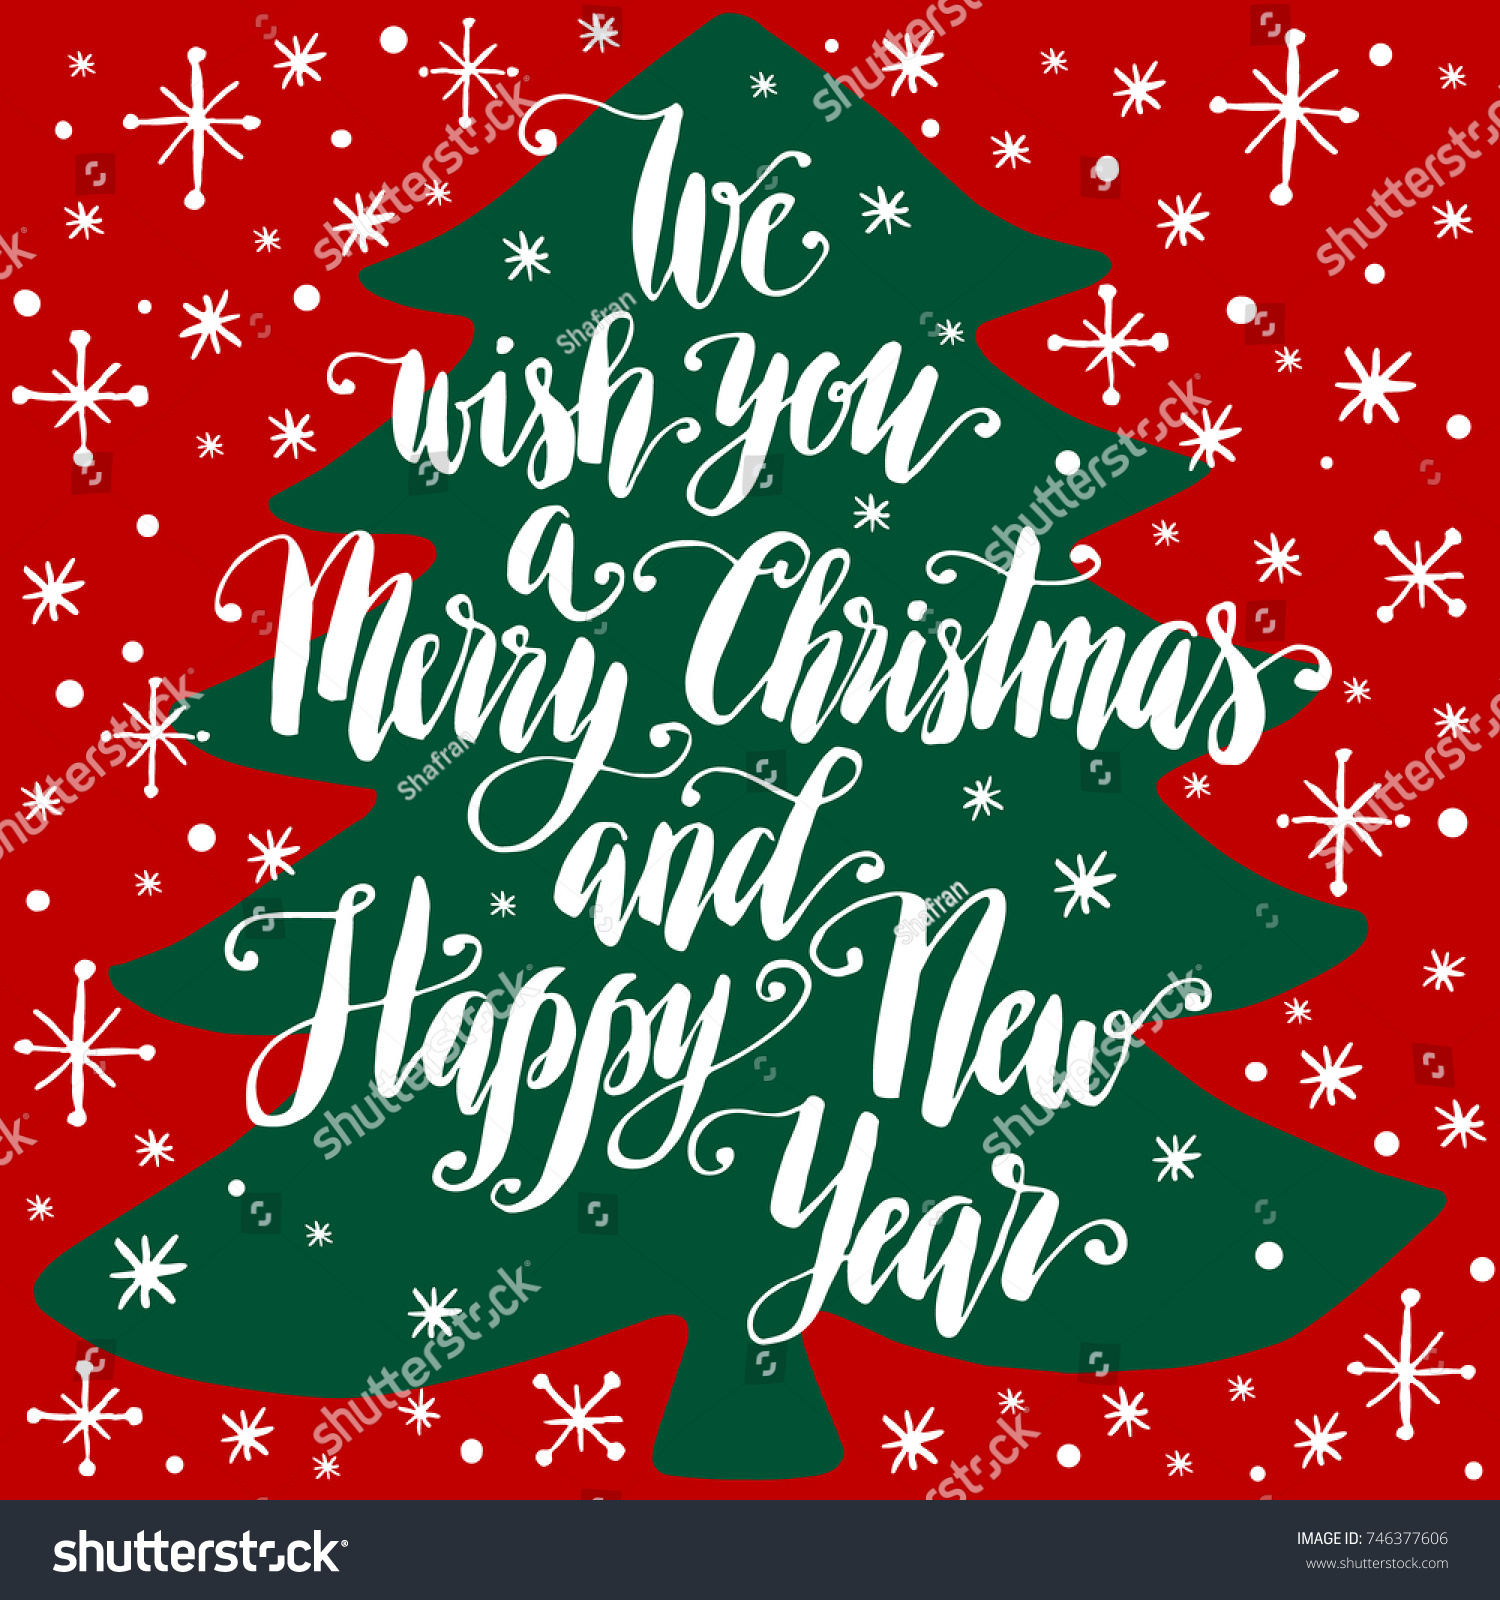 we wish you a merry christmas and happy new year hand written lettering on silhouette